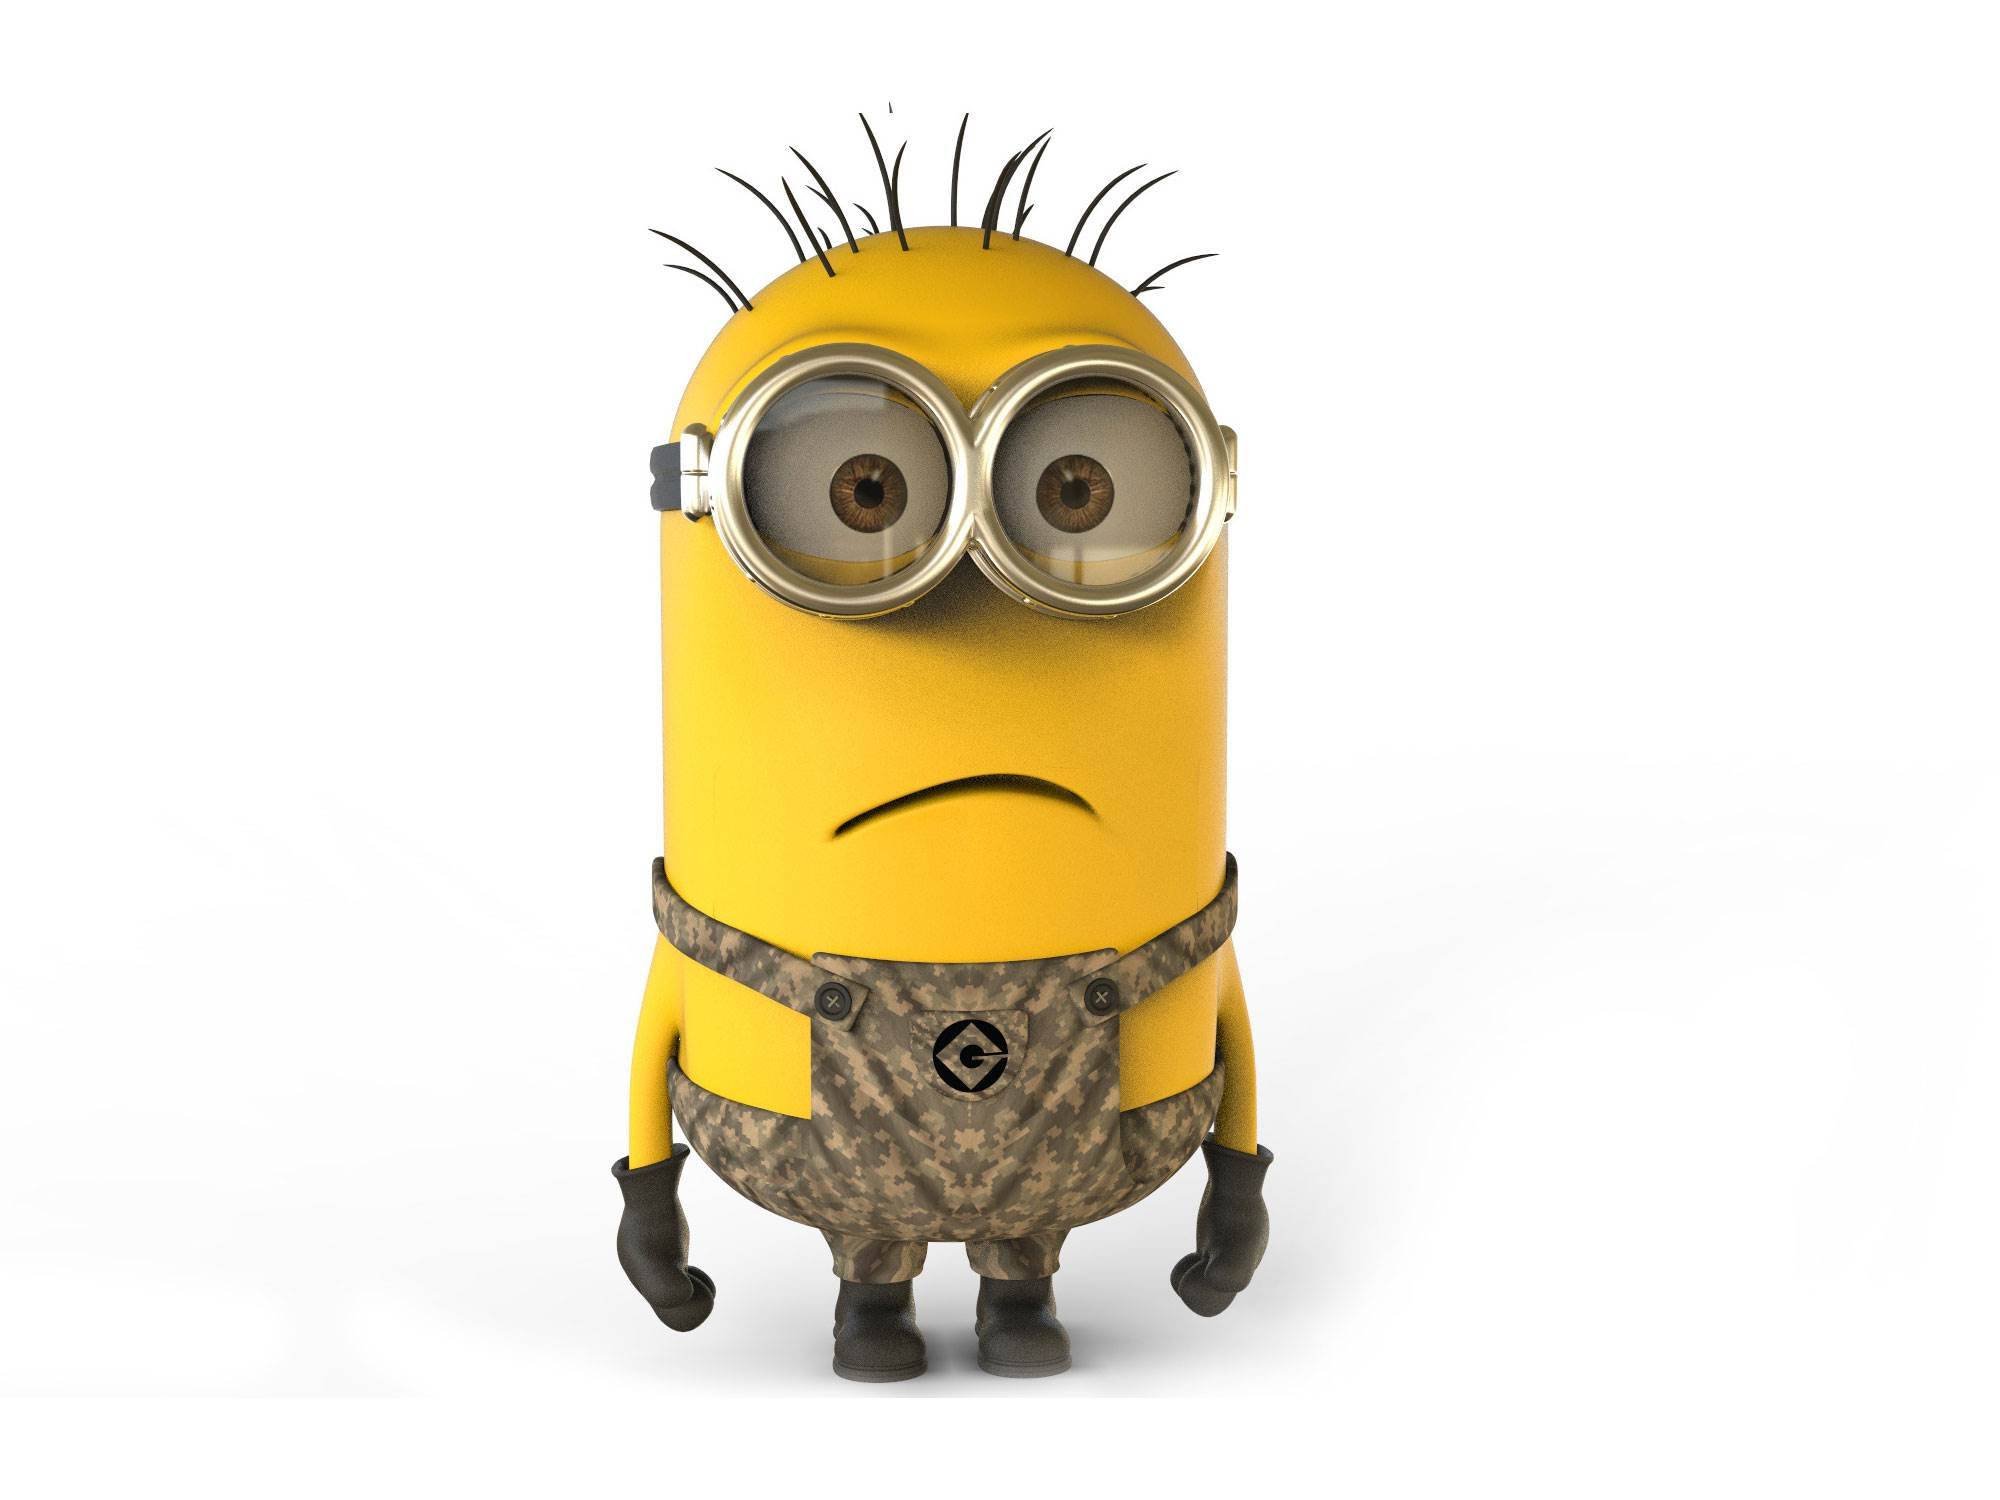 Wallpaper Minion Collection  2000x1500